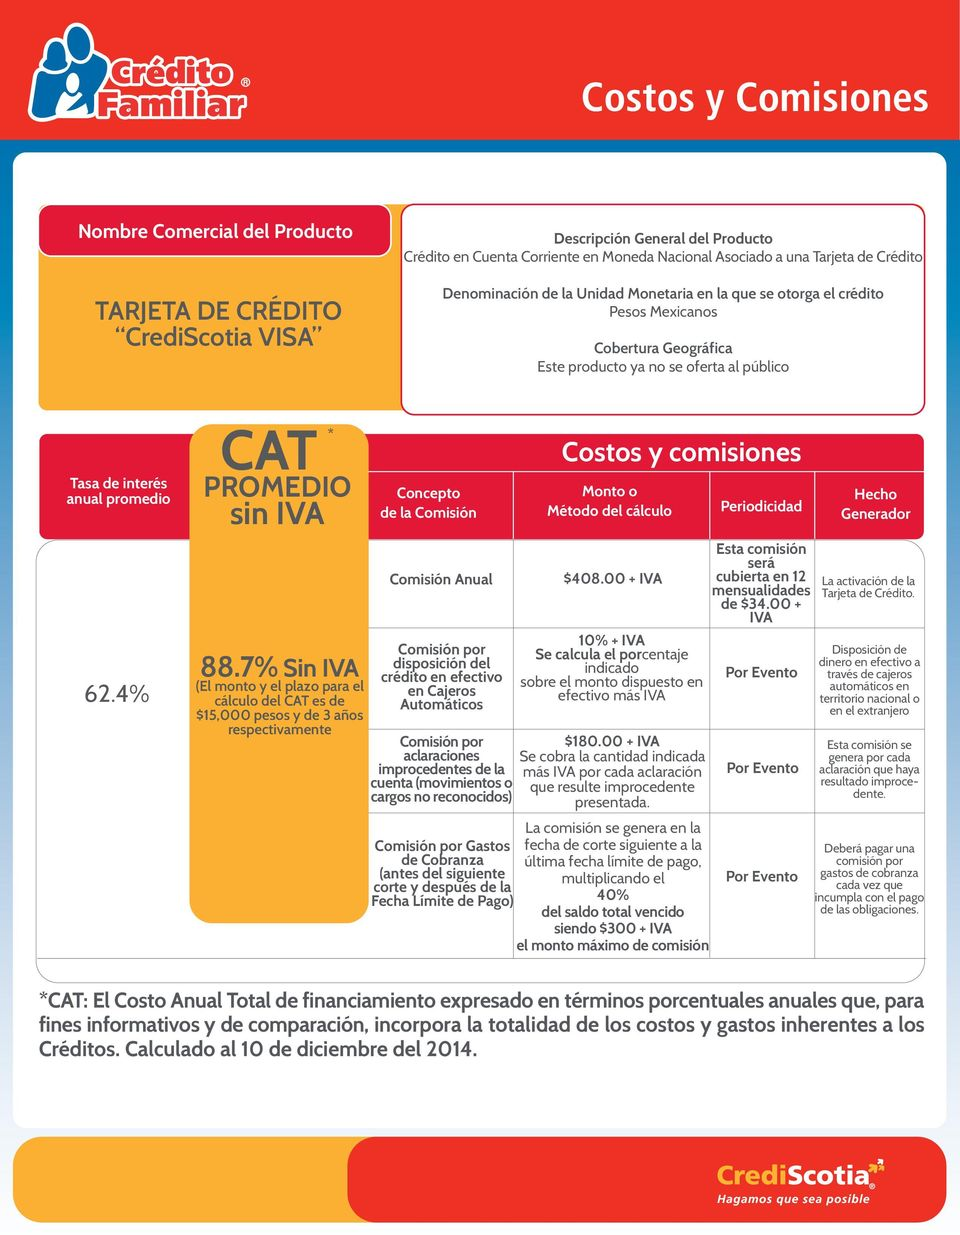 4% CAT * PROMEDIO sin IVA 88.